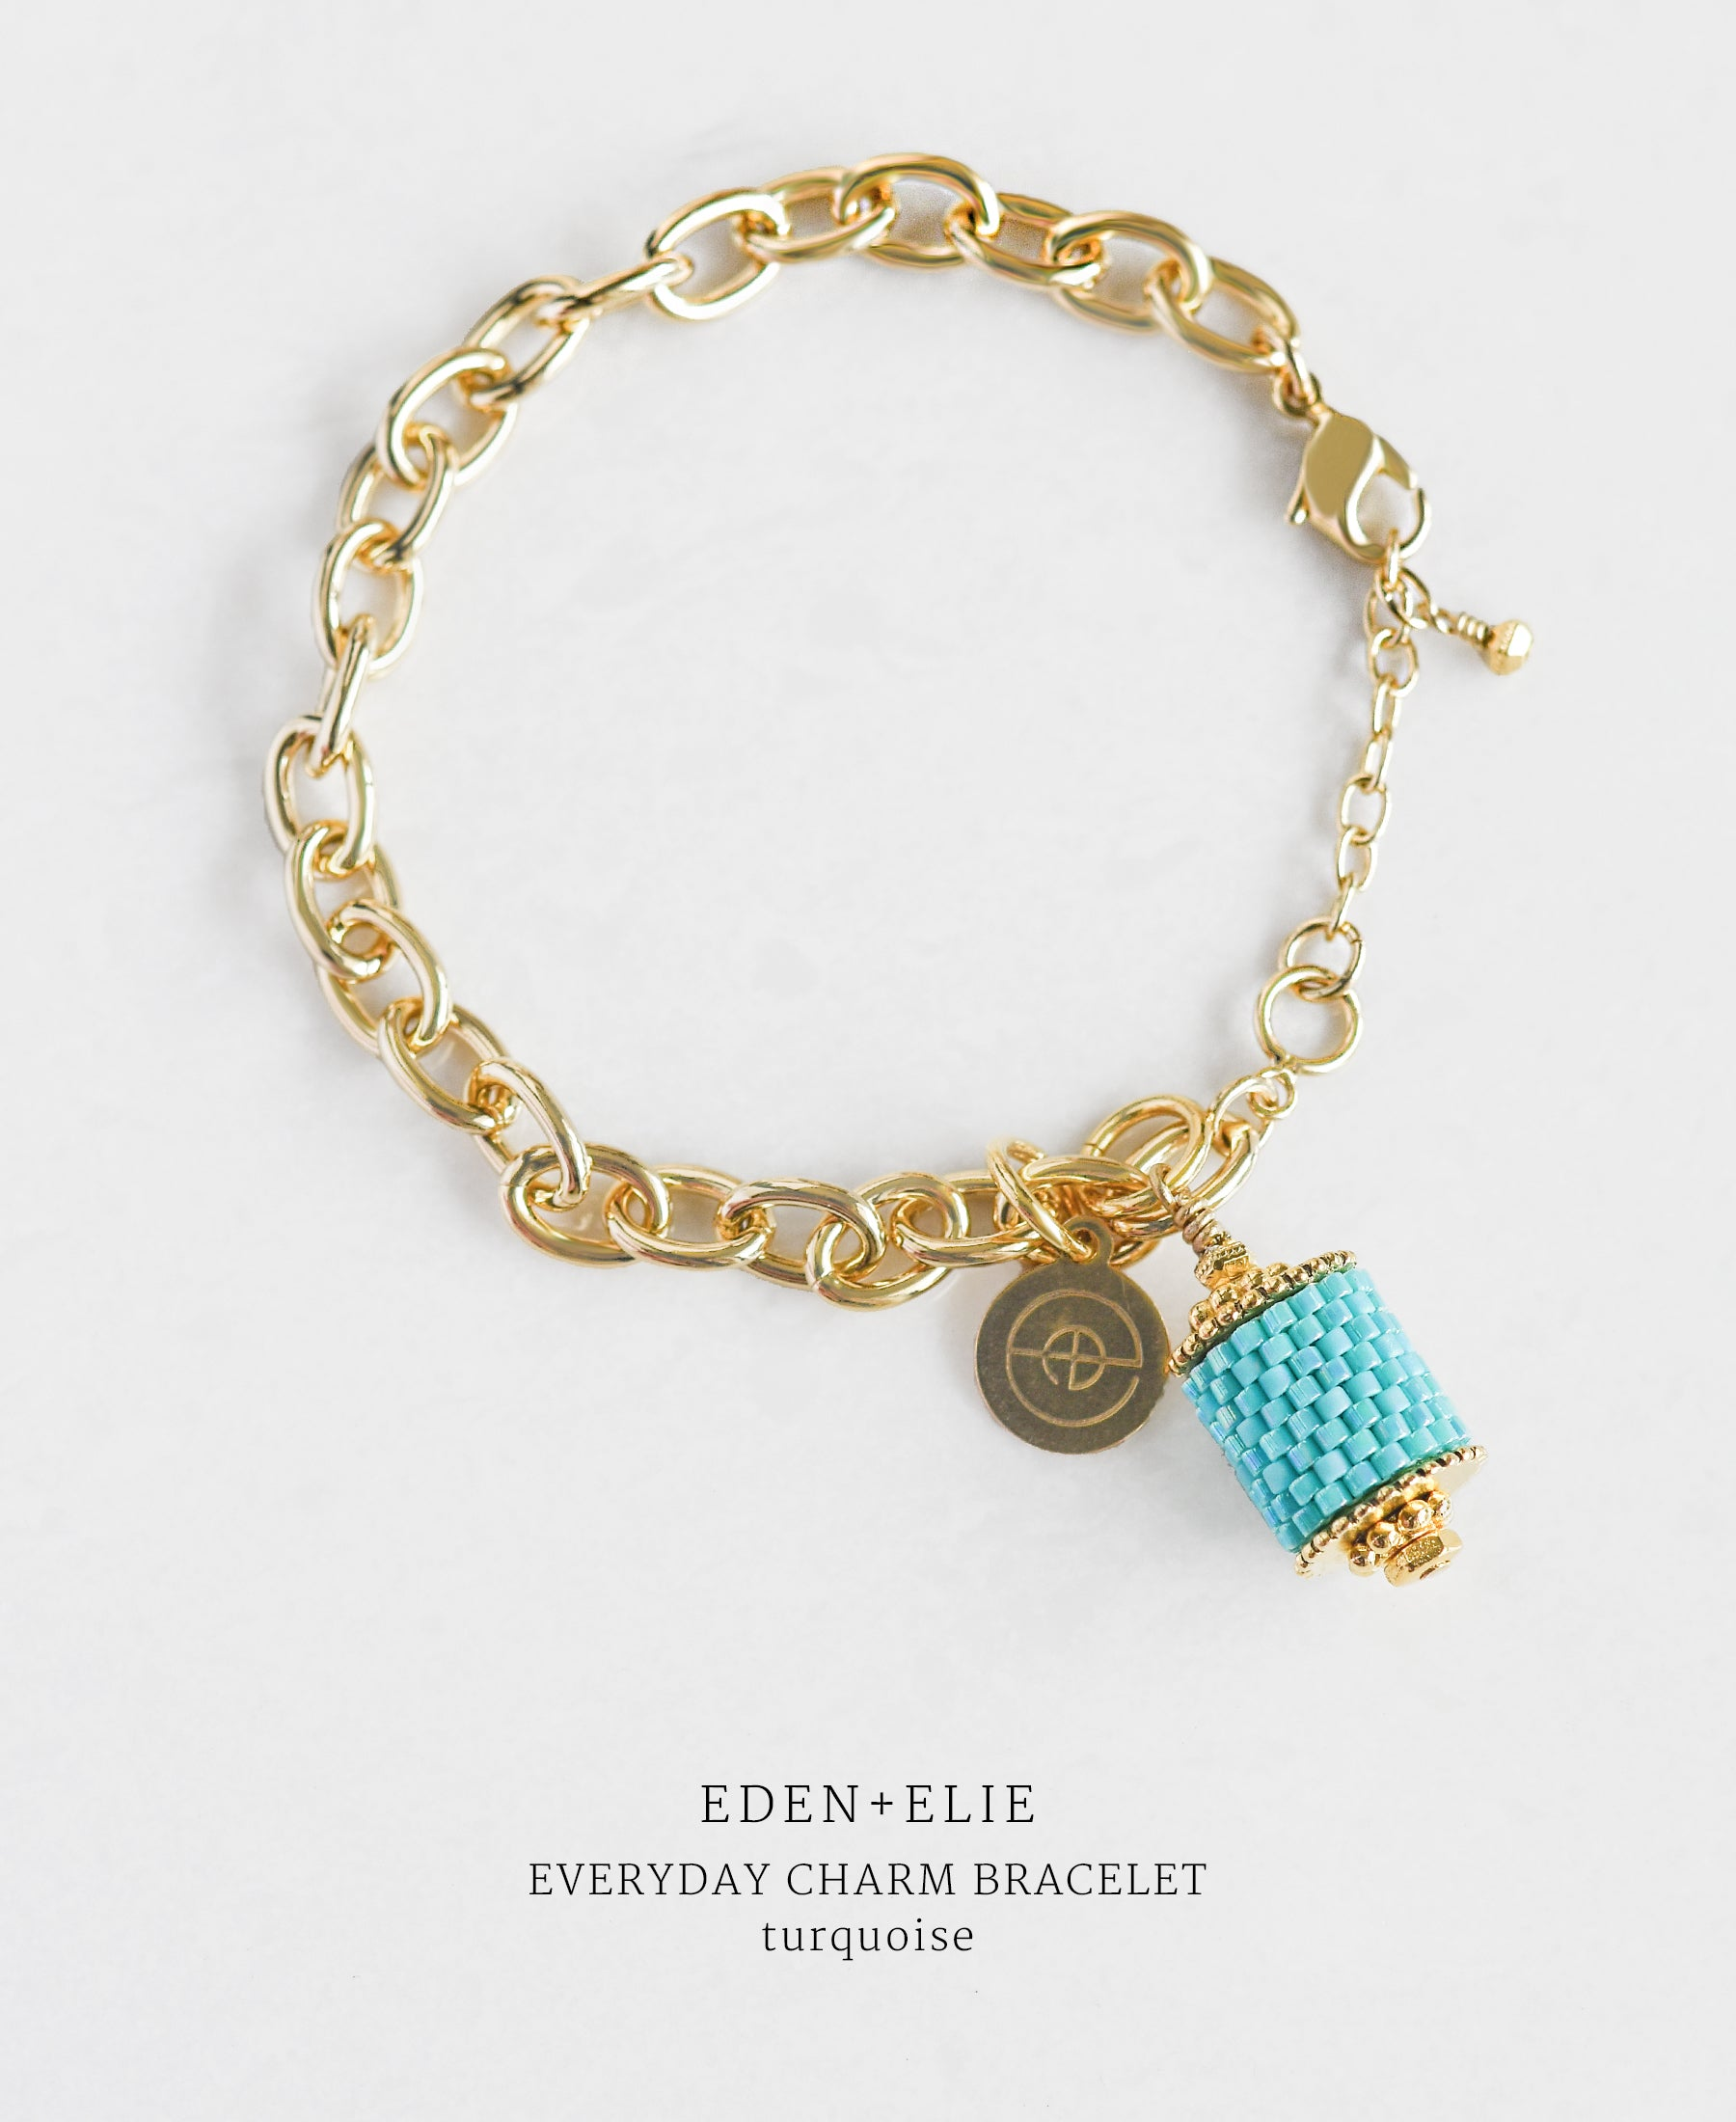 EDEN + ELIE Everyday gold charm bracelet - turquoise